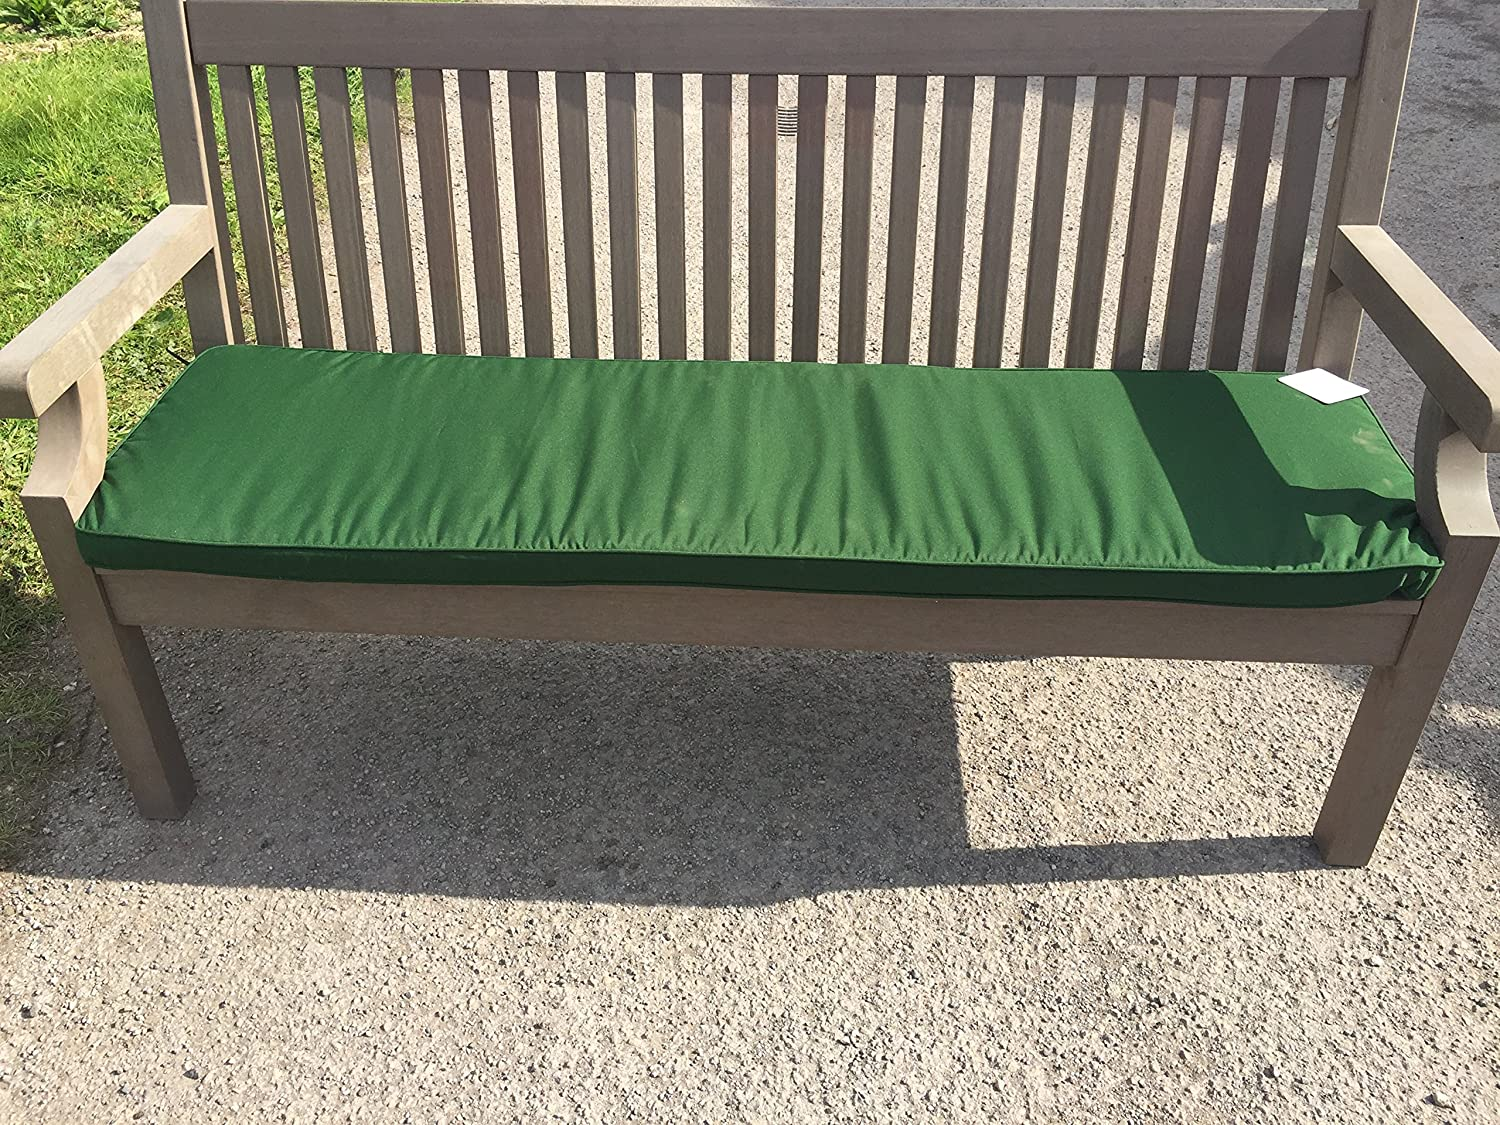 CUSHION Only - In Green - 3 Seater Bench Thicker Style - !SALE! Simply Wood